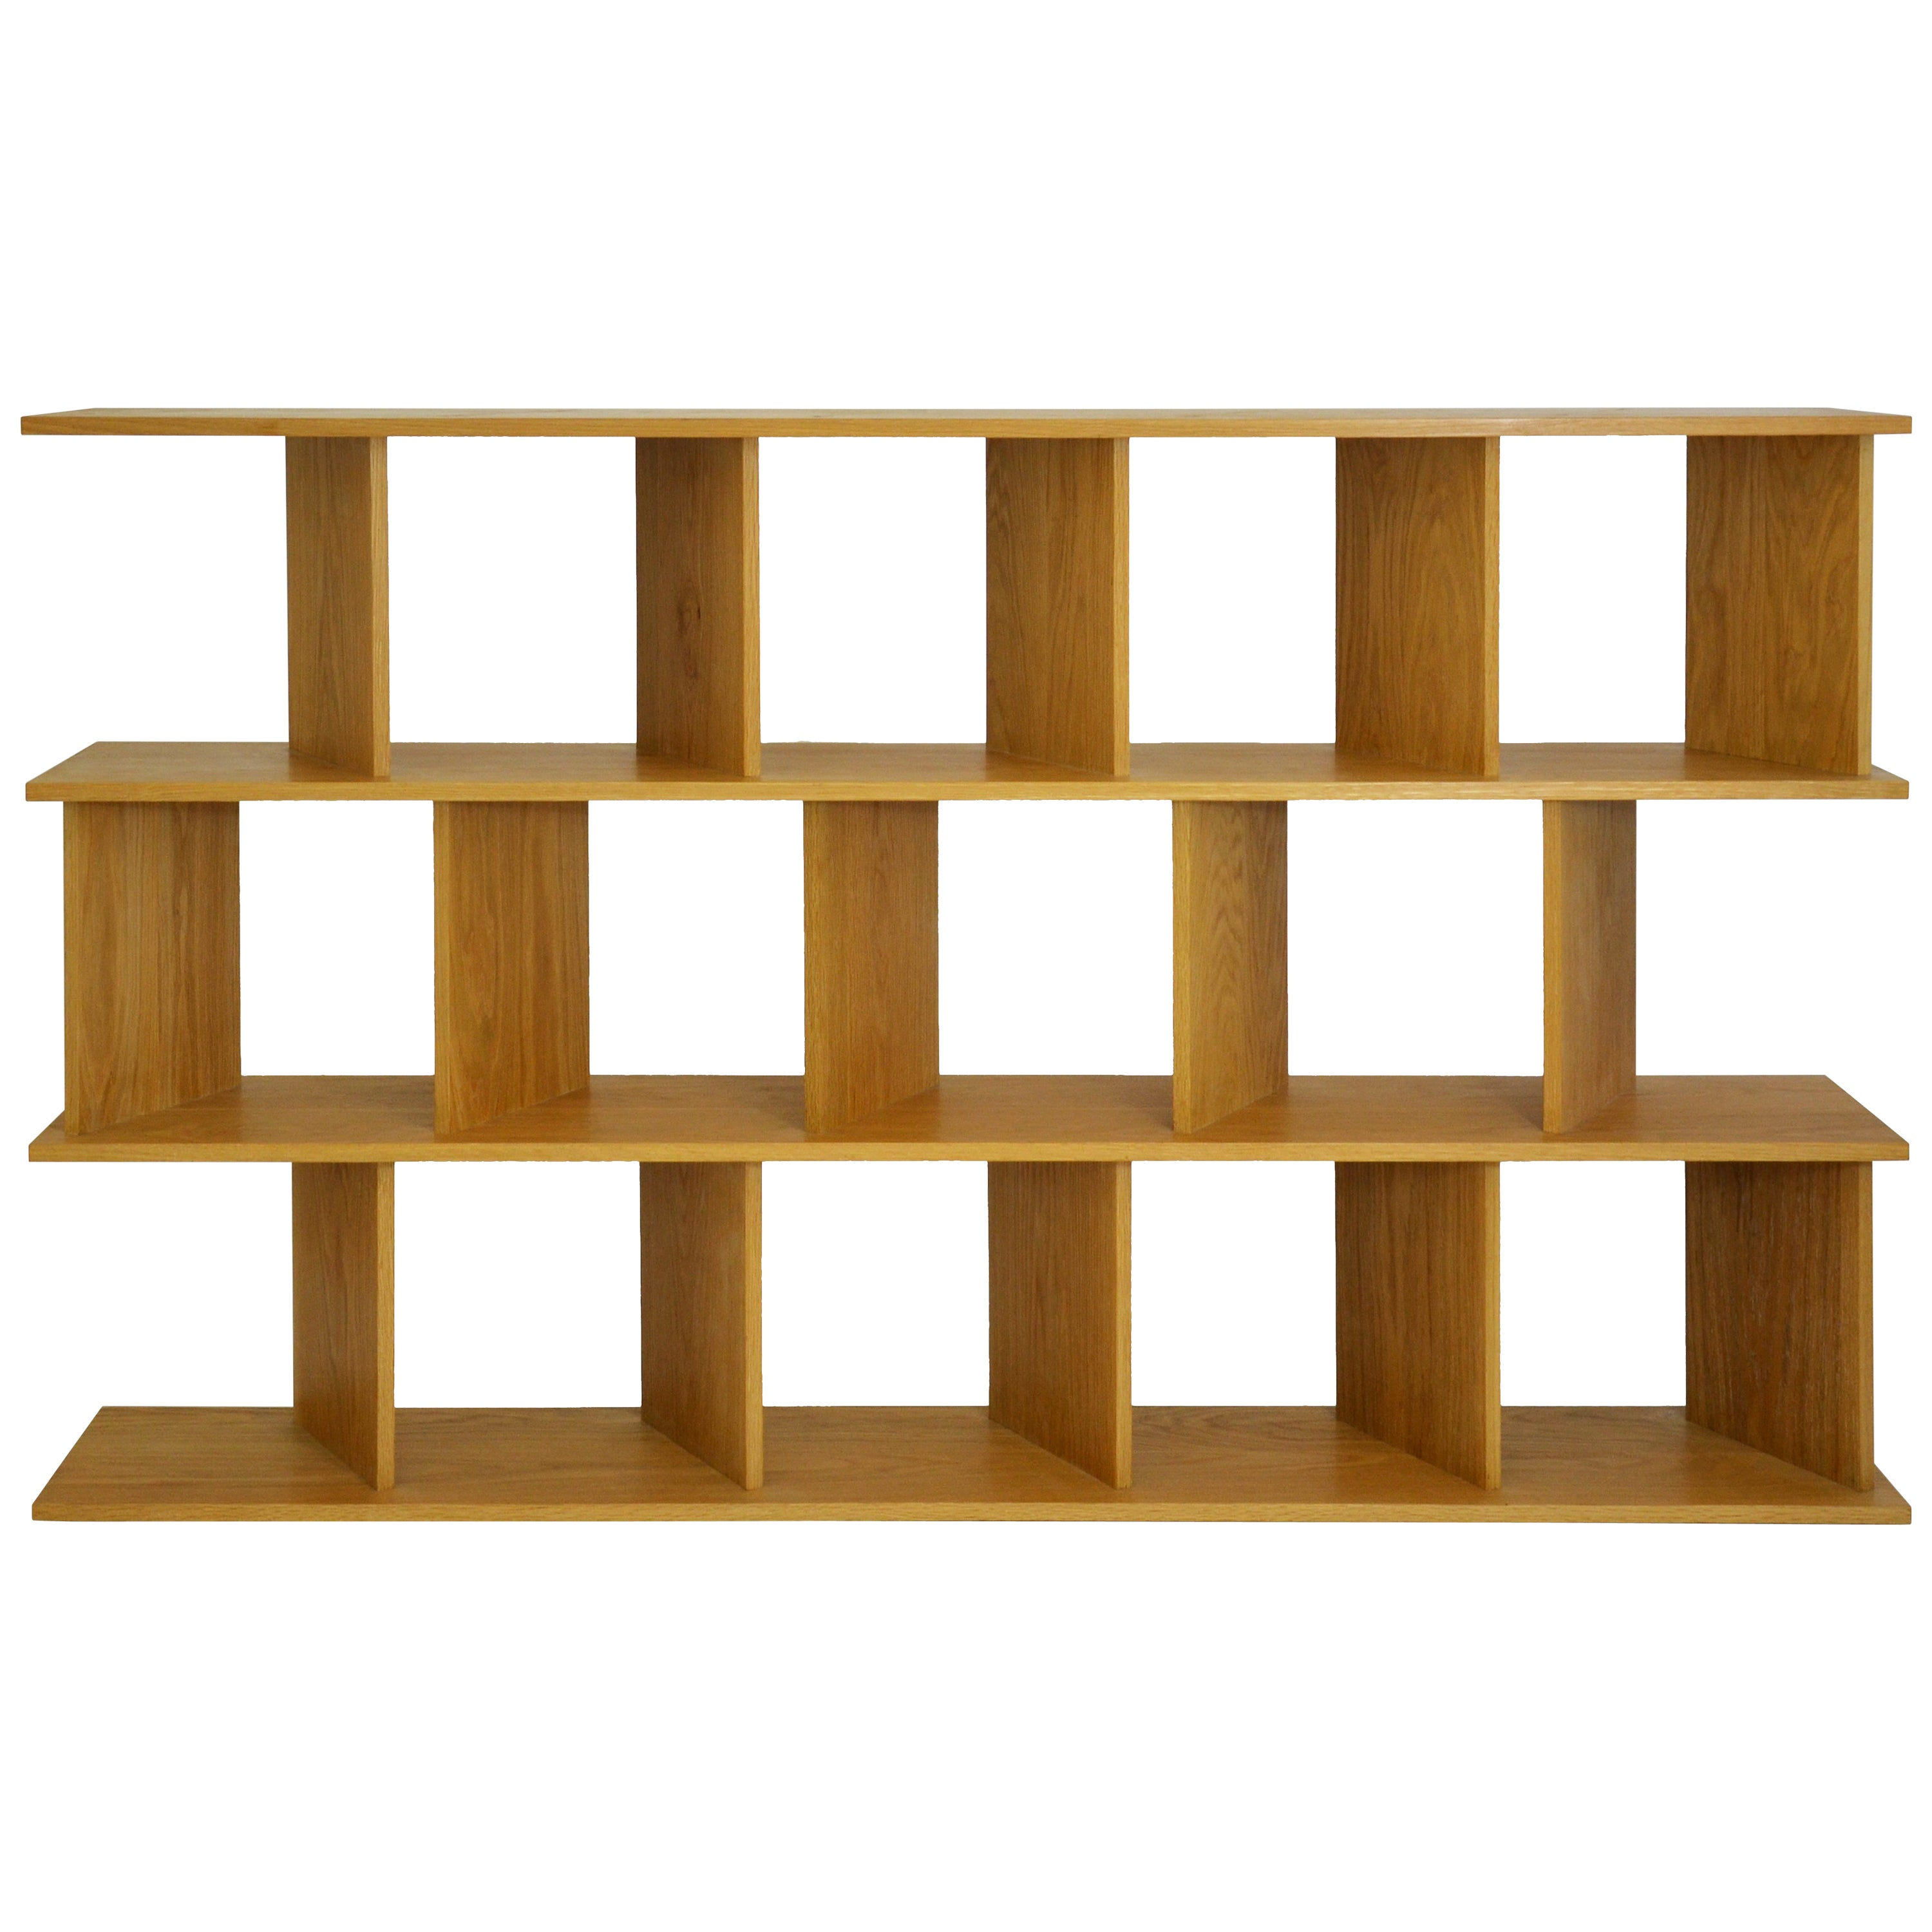 "Contemporary Room Divider Shelving ""30/30 M"" in Oak by Casey Lurie Studio"